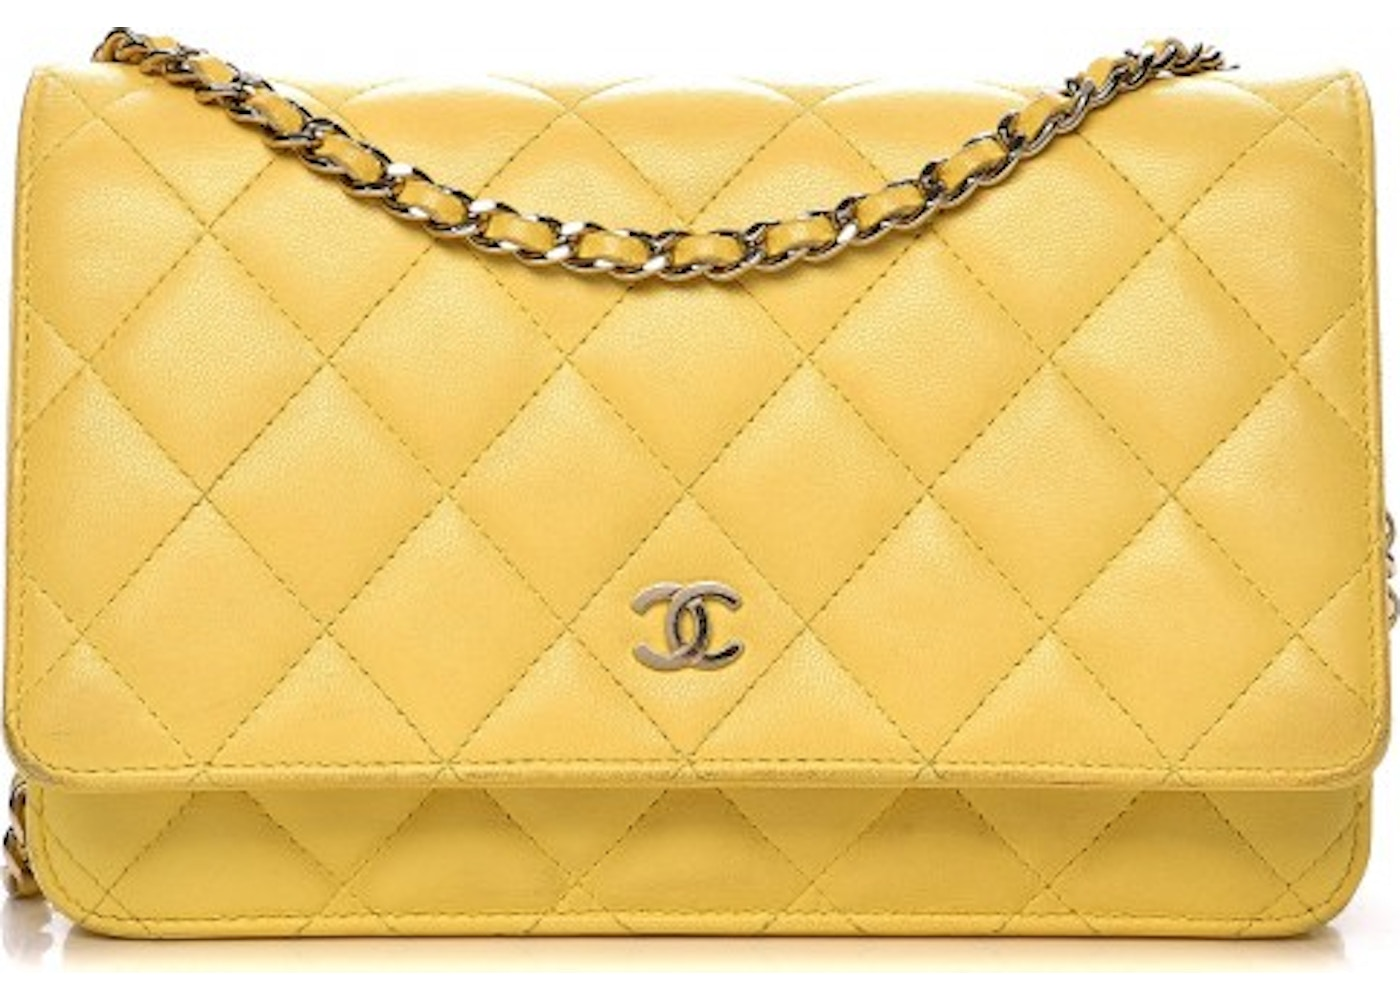 80cc5d5a1013 Chanel Wallet On Chain Quilted Diamond Yellow. Quilted Diamond Yellow